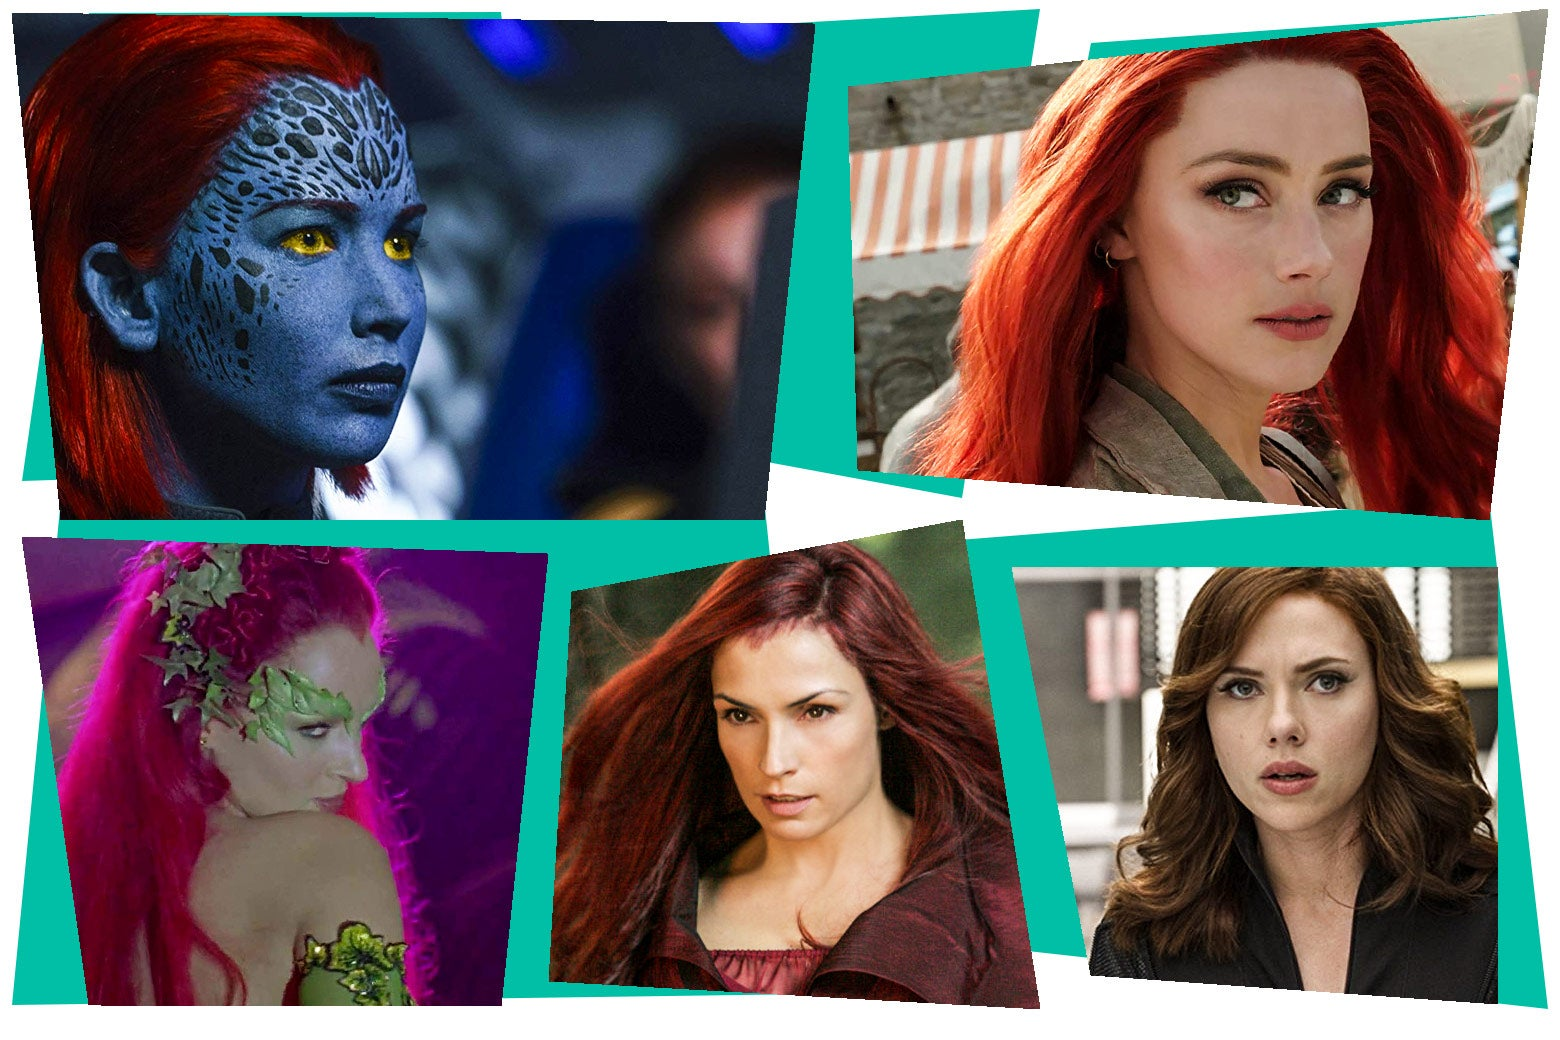 Famke Janssen as Jean Grey, Jennifer Lawrence as Mystique in the X-Men movies, Amber Heard as Mera in Aquaman, Uma Thurman as Poison Ivy in Batman and Robin, and Scarlett Johansson as Black Widow.